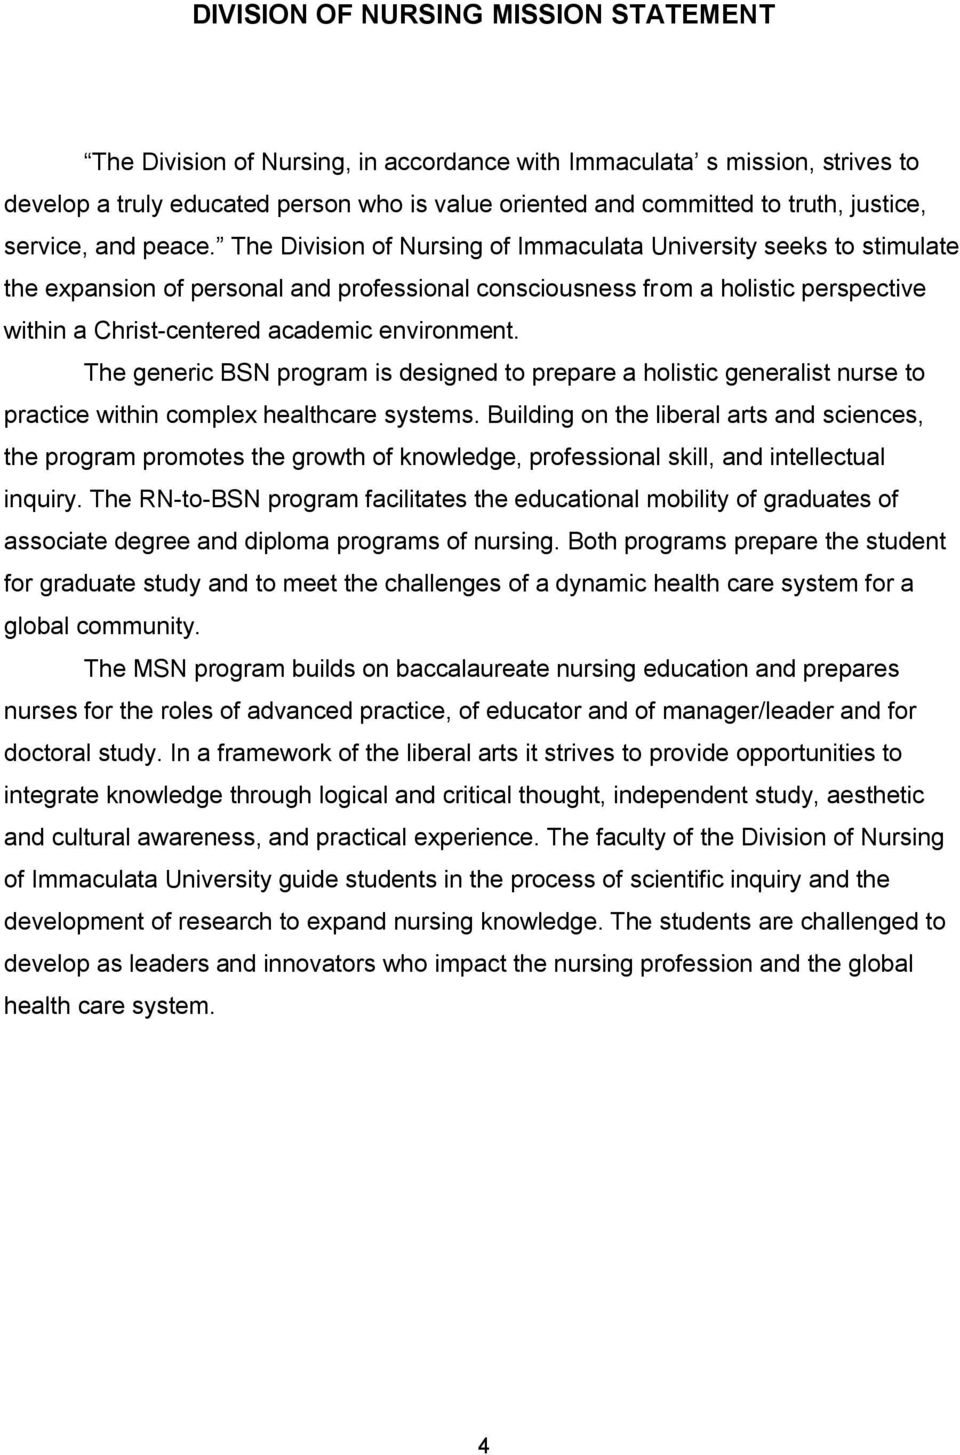 The Division of Nursing of Immaculata University seeks to stimulate the expansion of personal and professional consciousness from a holistic perspective within a Christ-centered academic environment.